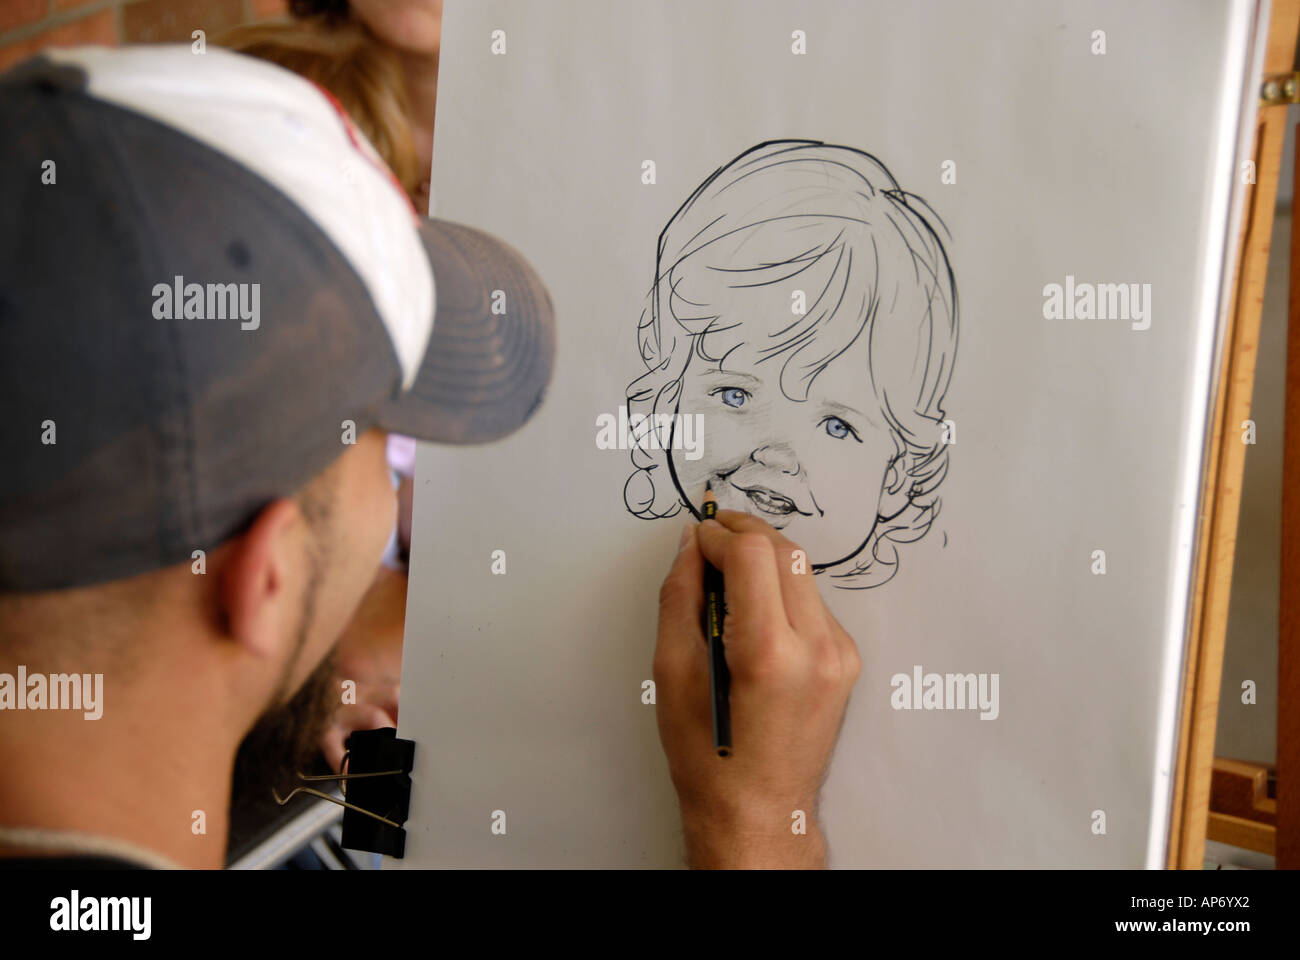 Male sidewalk artist draws a caricature of a mother and daughter - Stock Image